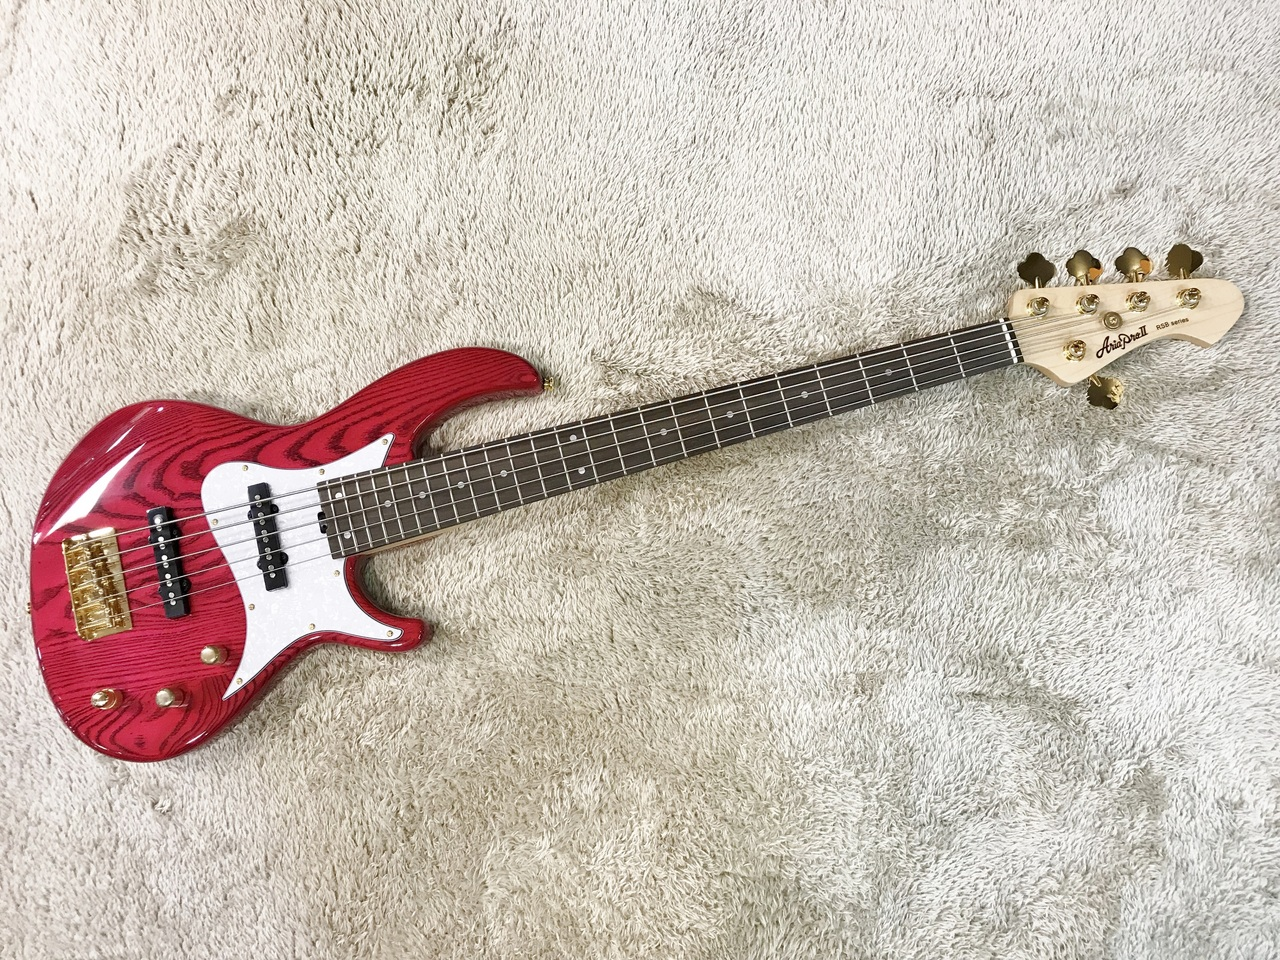 Aria Pro II RSB-42AR / 5 SPK Outlet Specials] [5 string bass]